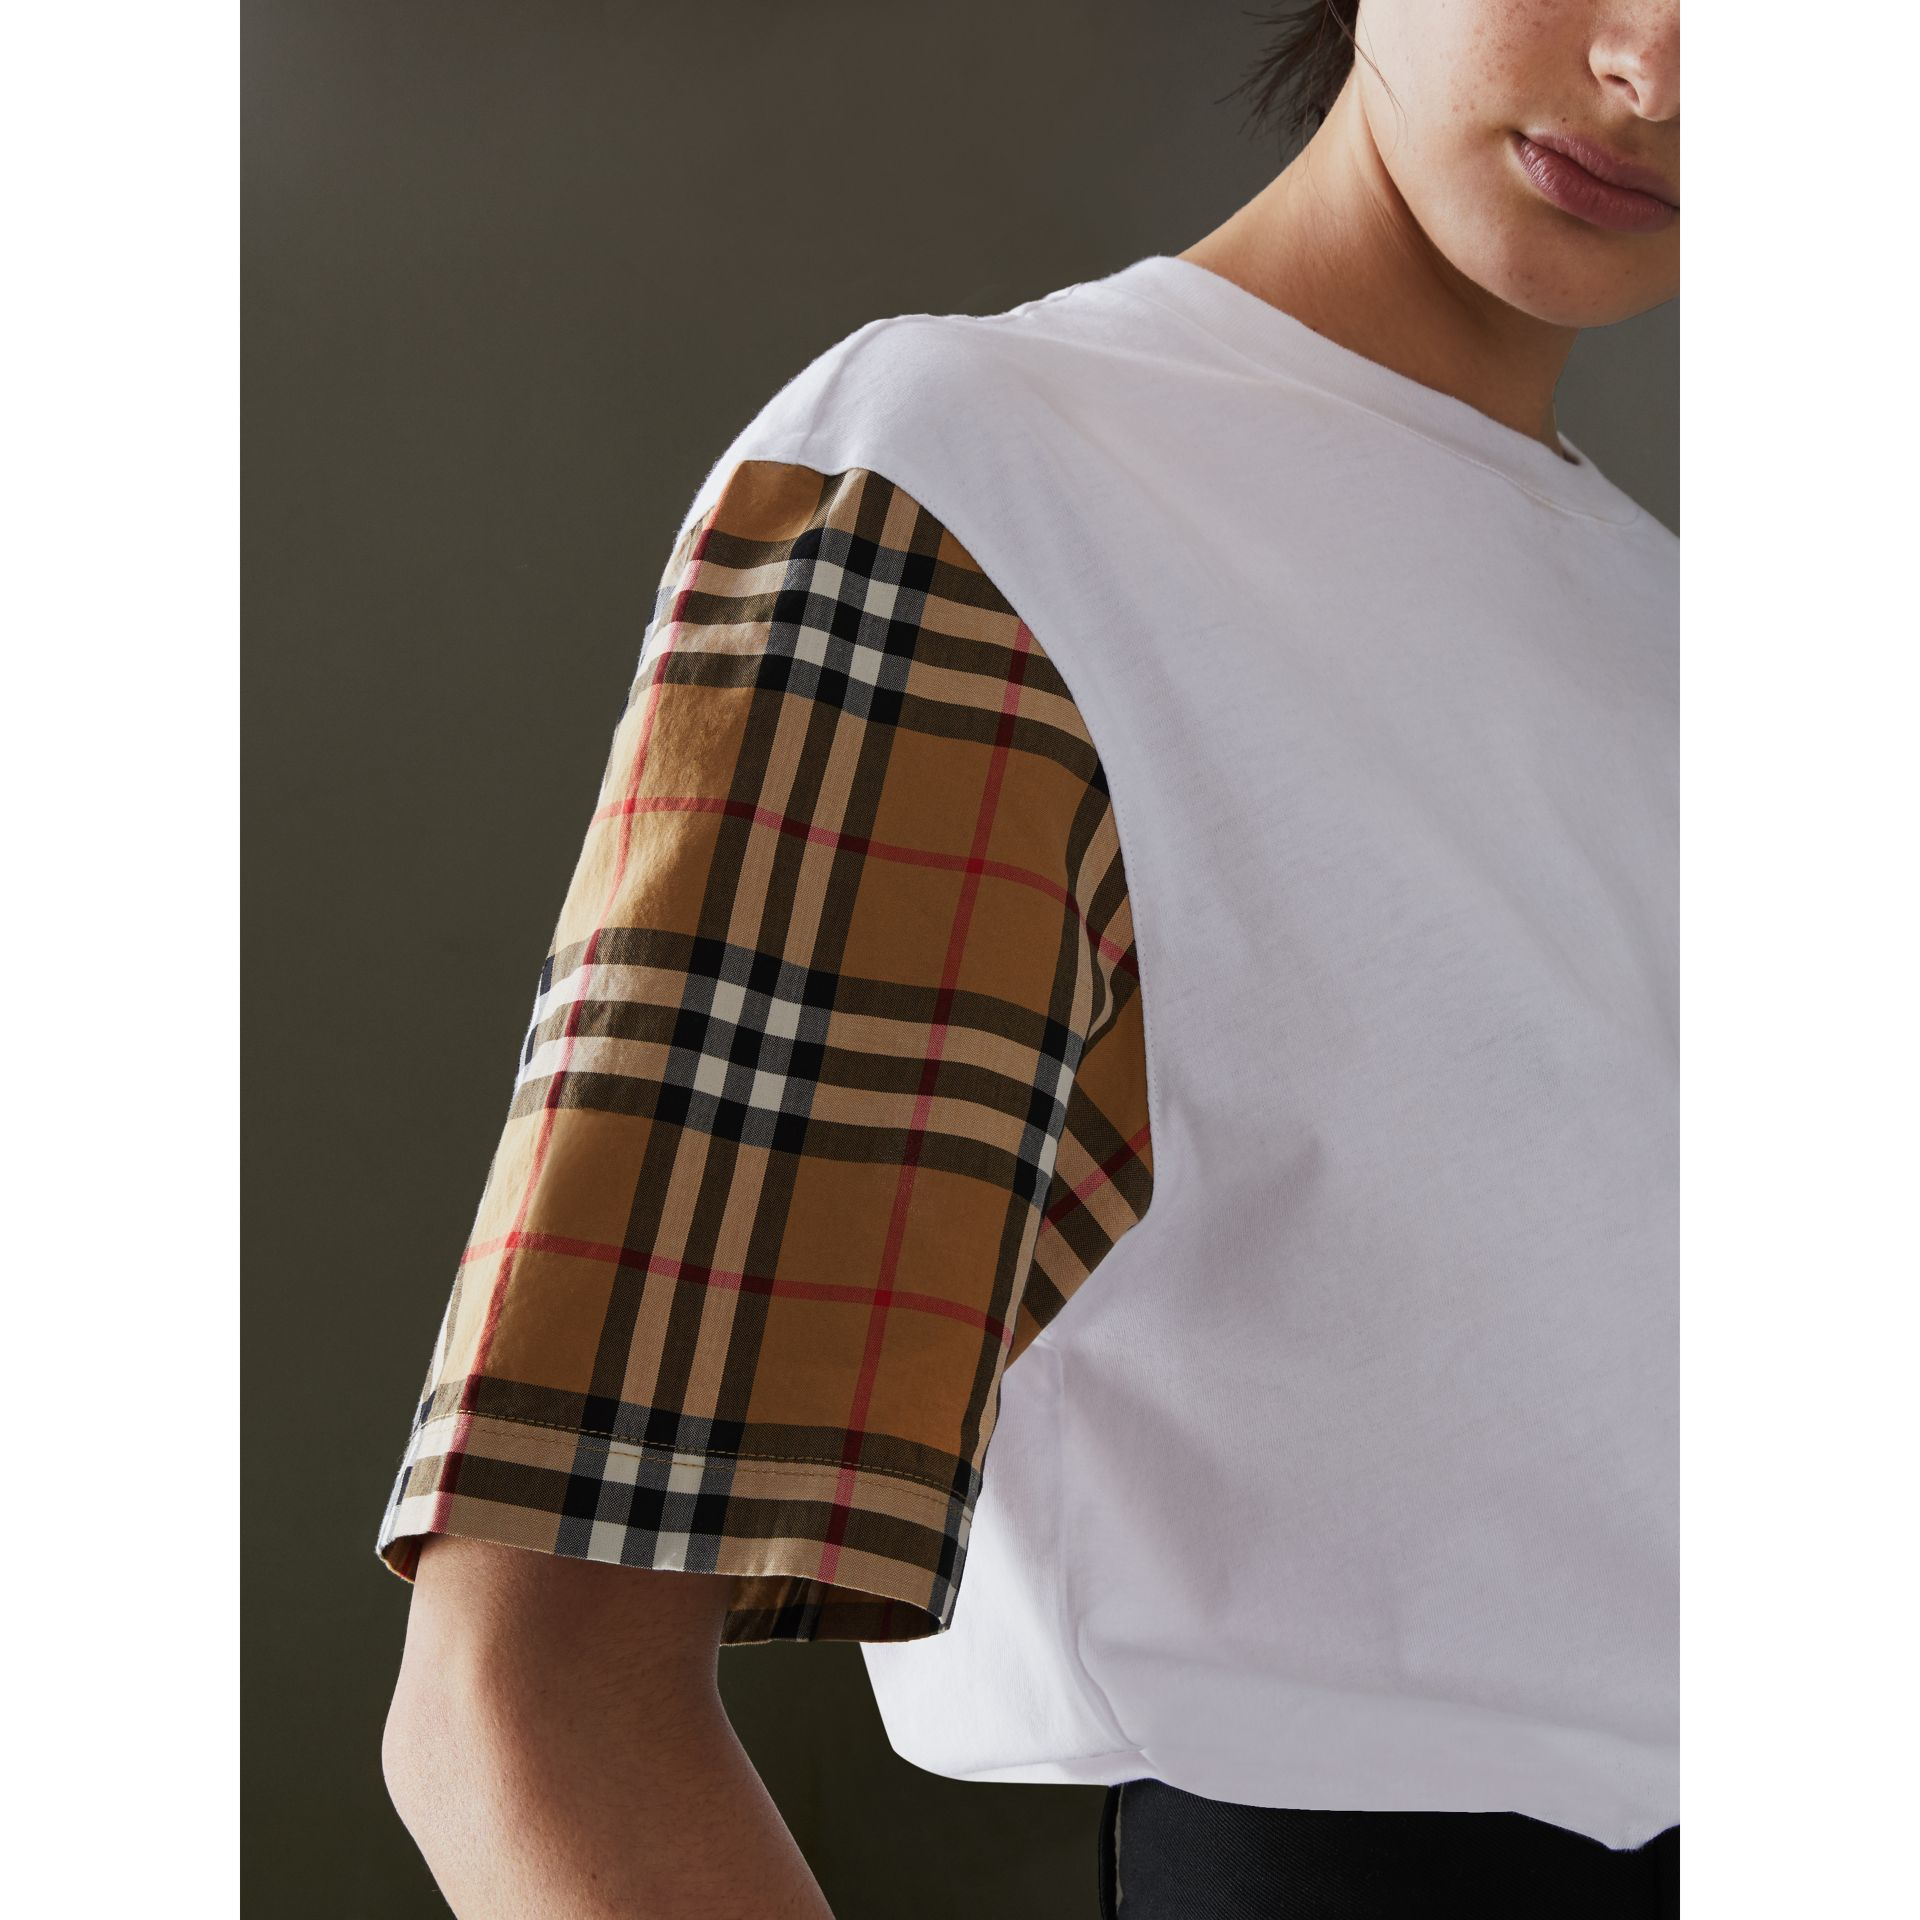 Vintage Check Sleeve Cotton T-shirt in White - Women | Burberry Australia - gallery image 1